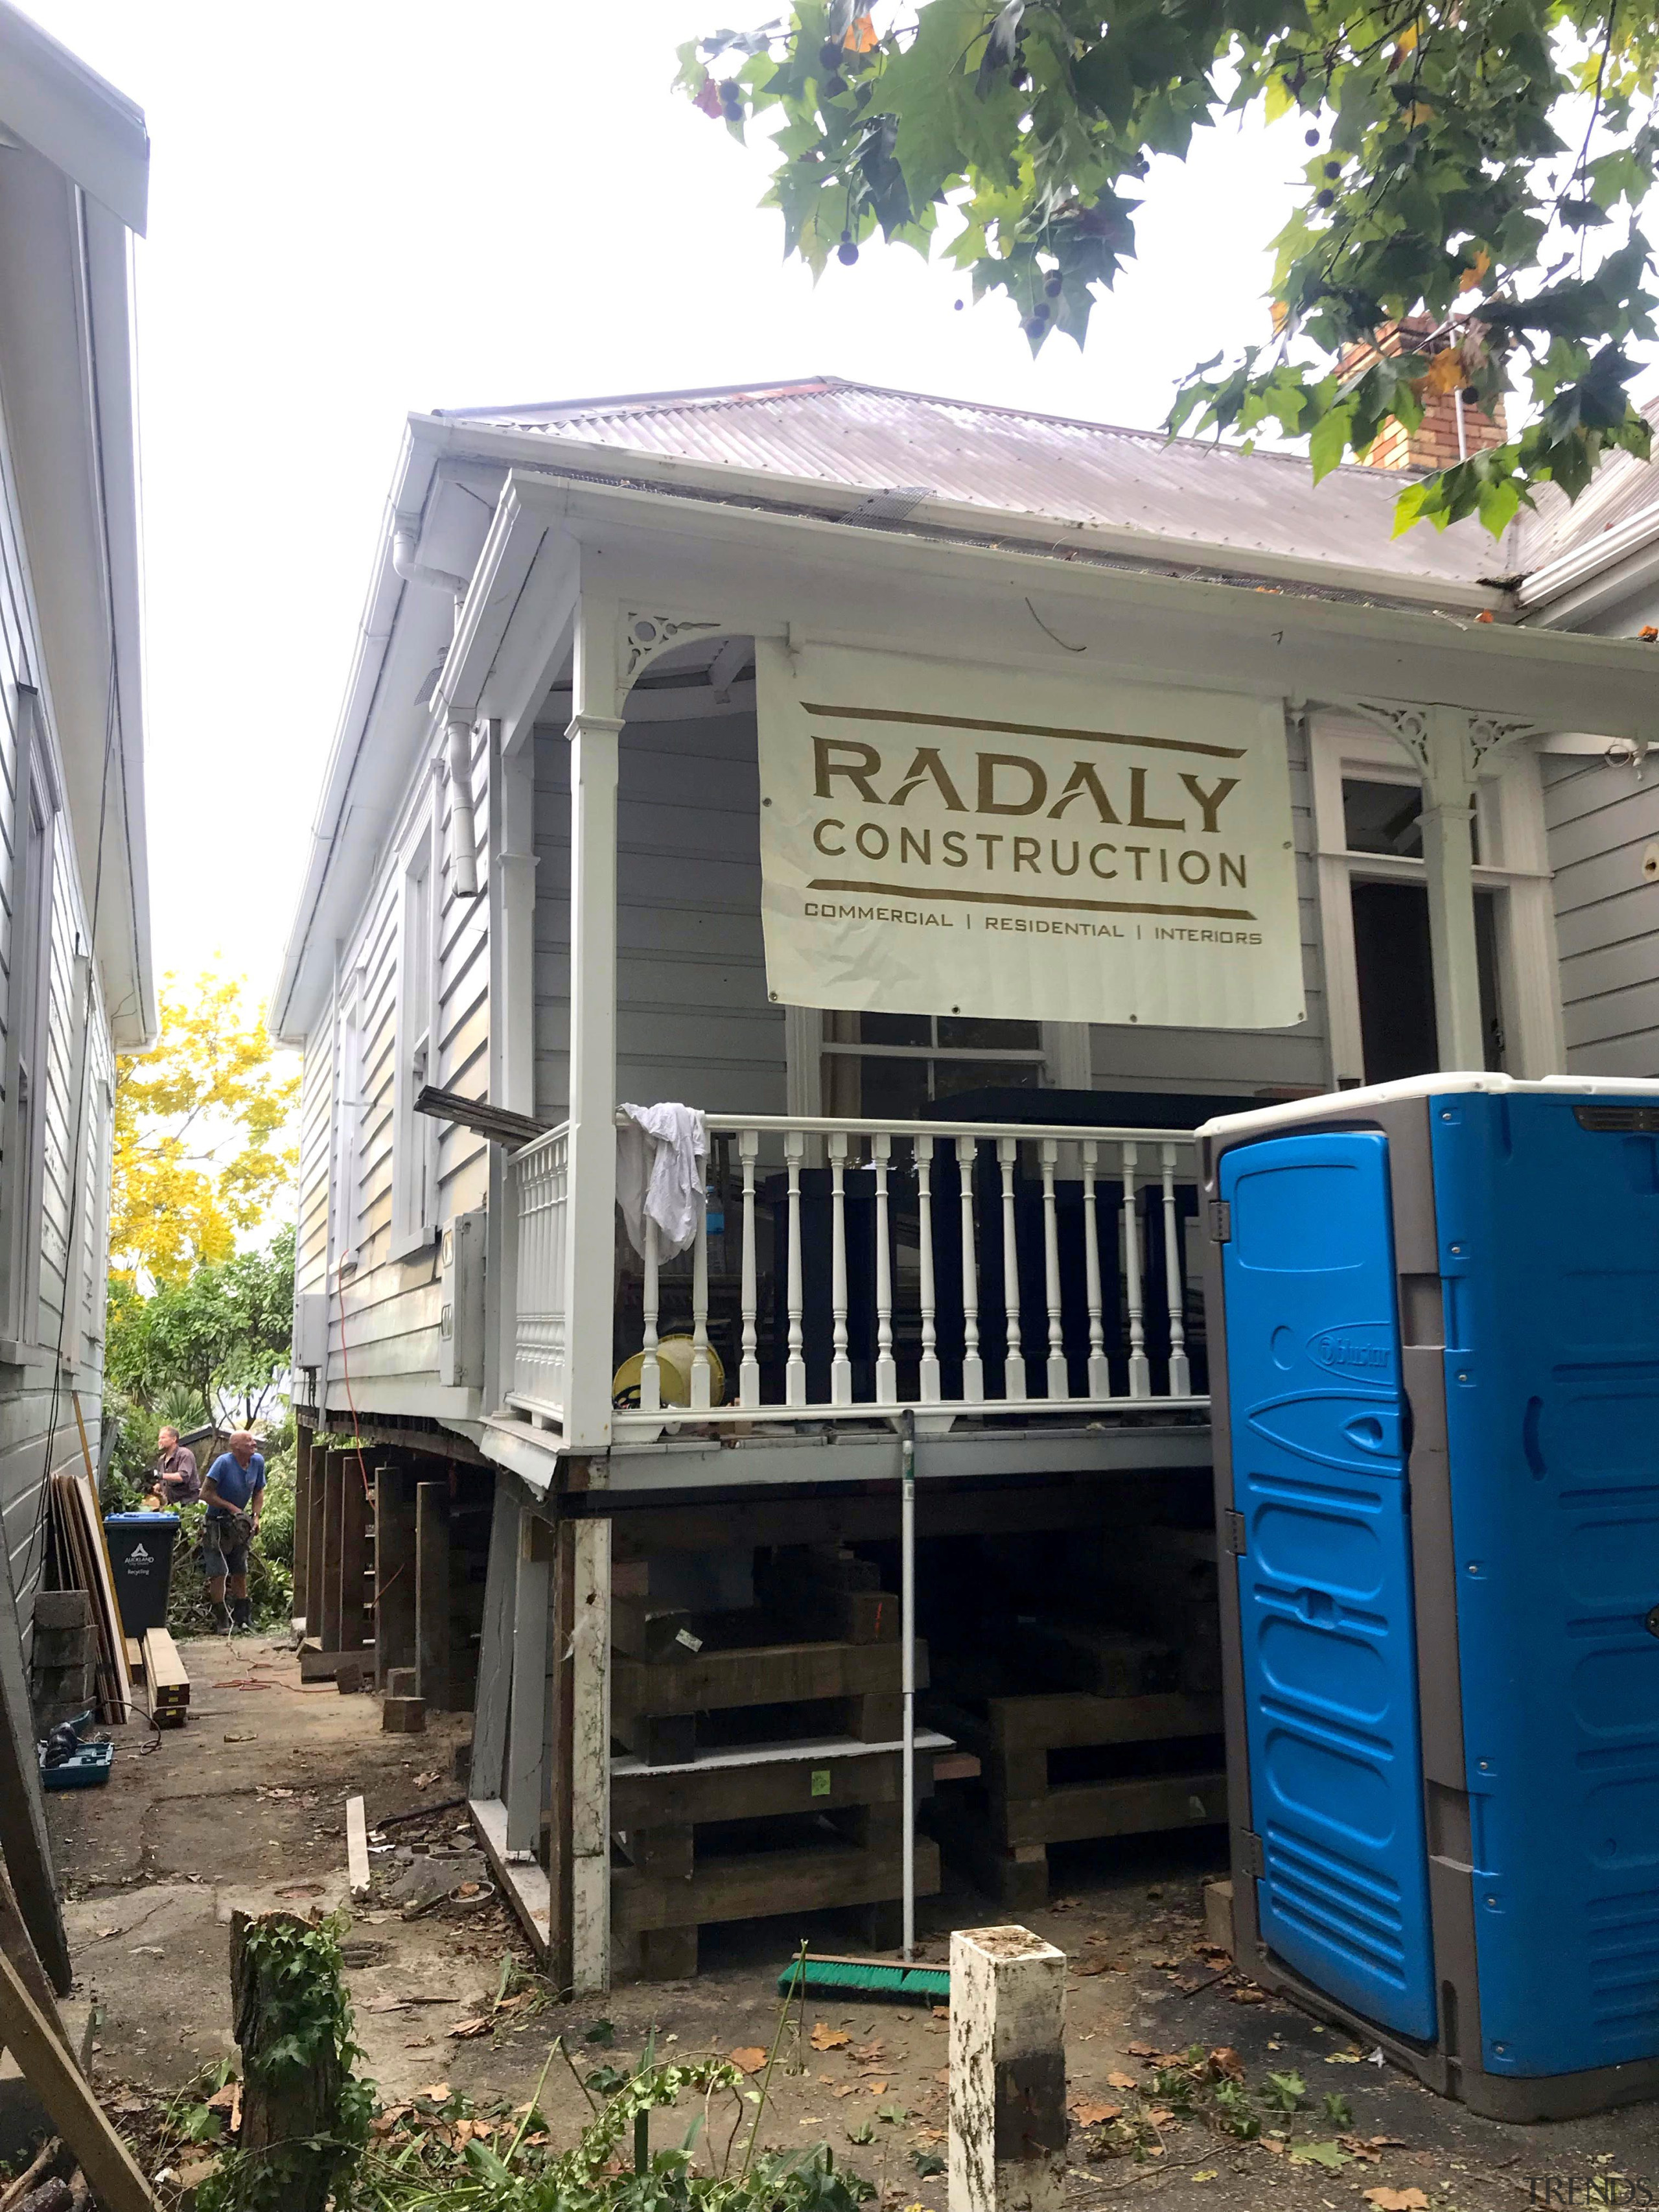 Diary of a renovation: Volume one - architecture architecture, building, home, house, neighbourhood, porch, property, shed, gray